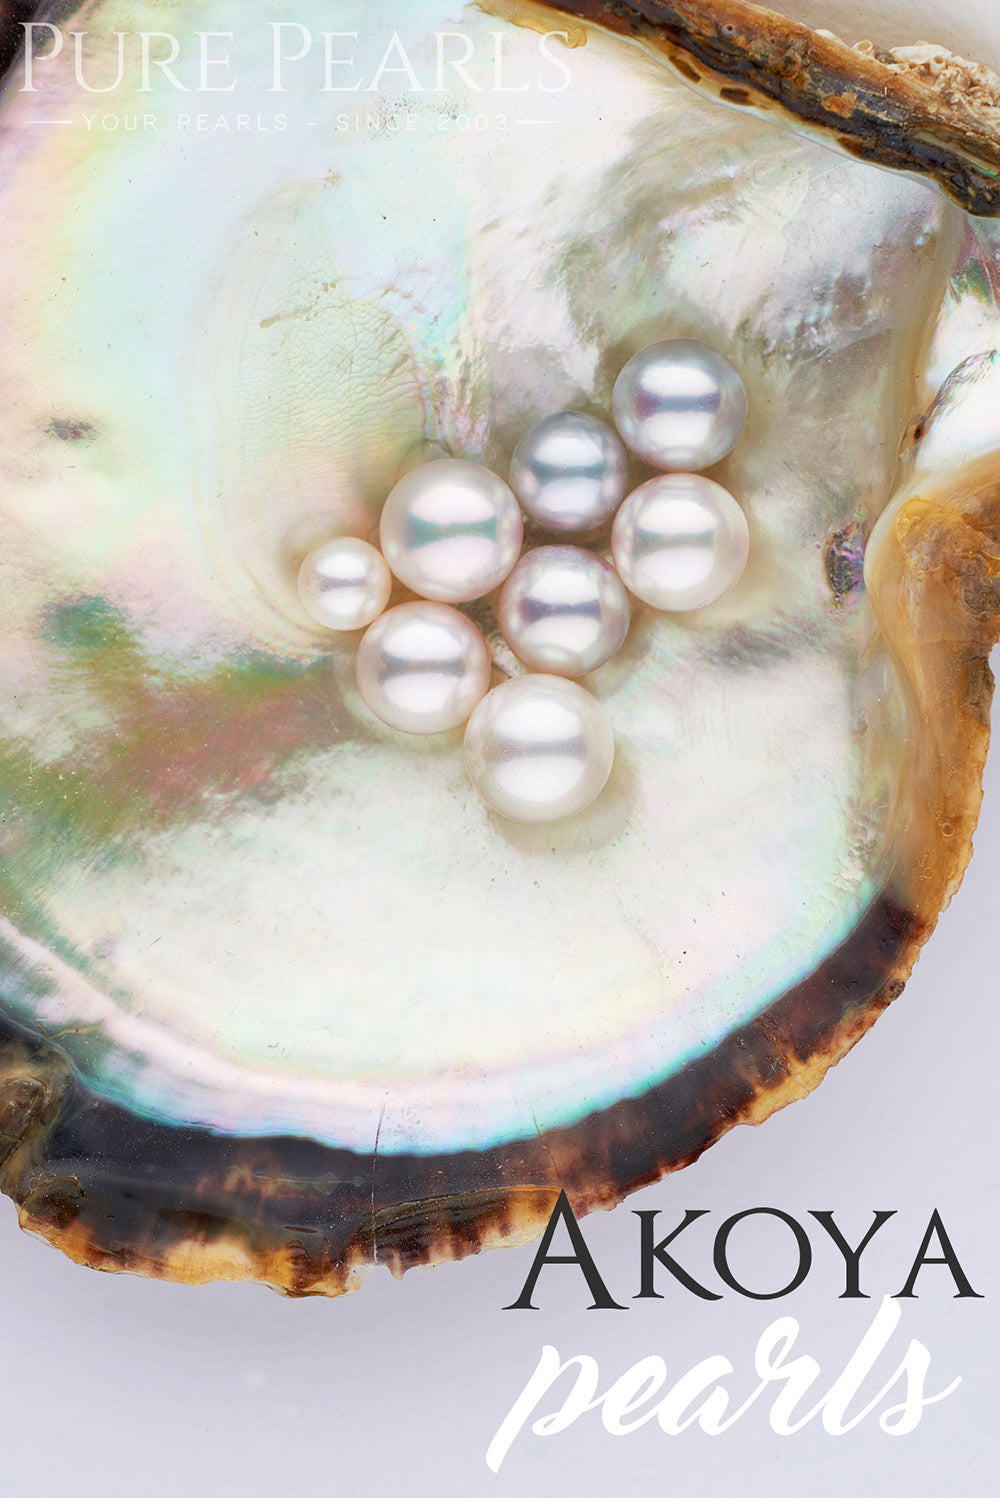 Akoya Pearl Buying Guide